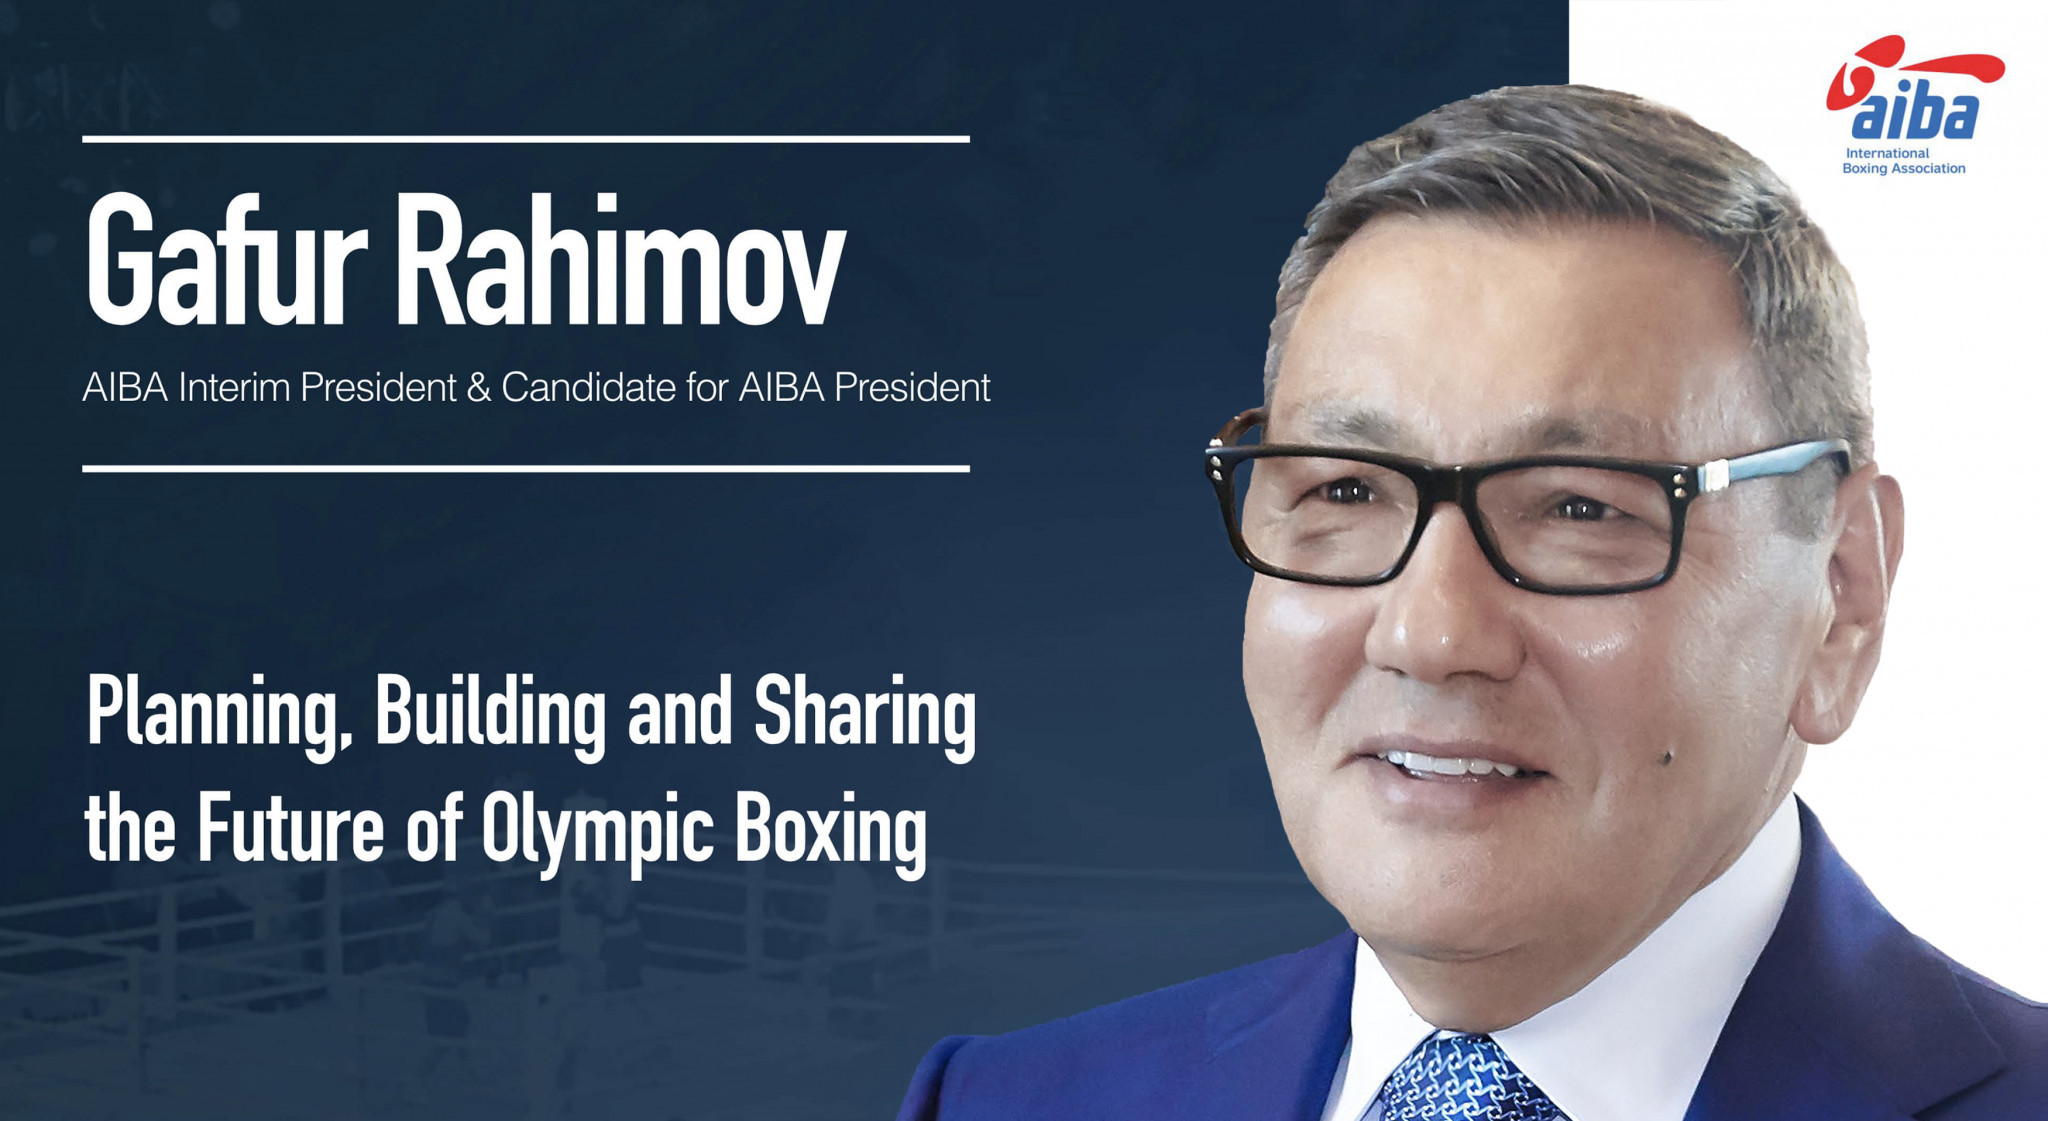 Gafur Rakhimov has published his manifesto for the AIBA Presidency ©Gafur Rakhimov